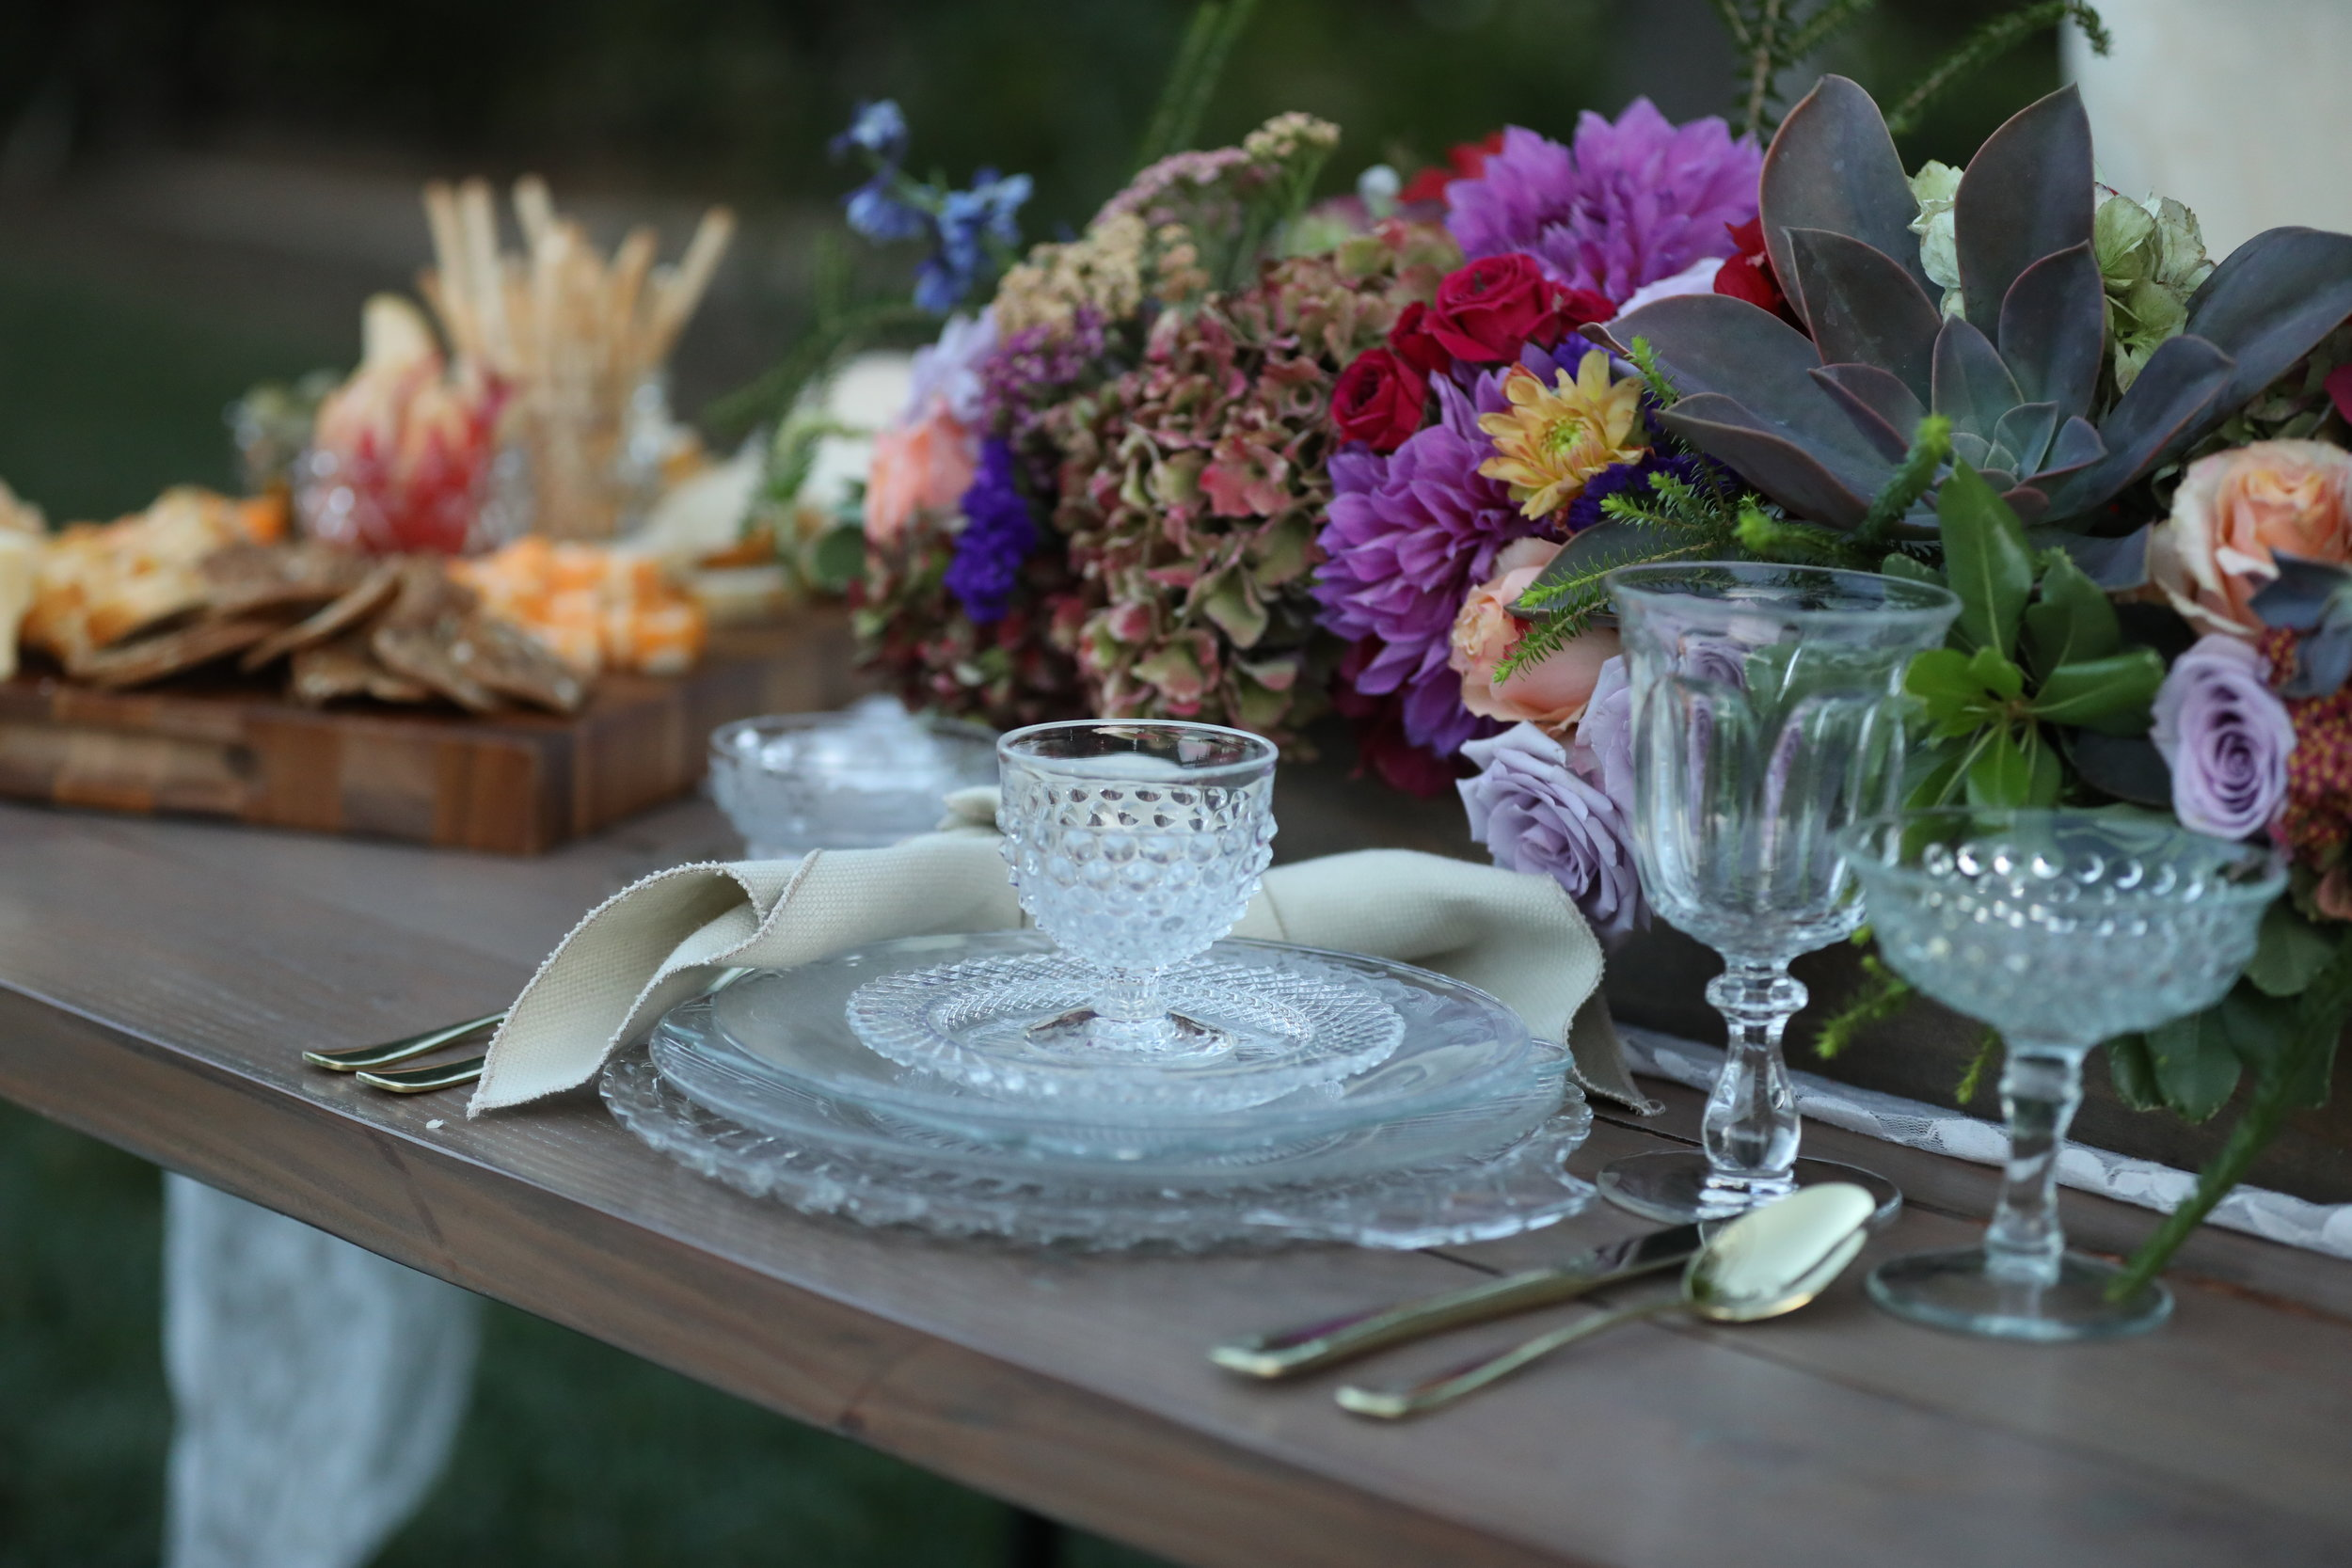 Vintage EAPC cut glass place setting with dinner plates, salad plates, bread plates, and crystal chargers. Perfect to rent for any wedding or event. Temecula Valley Rentals.